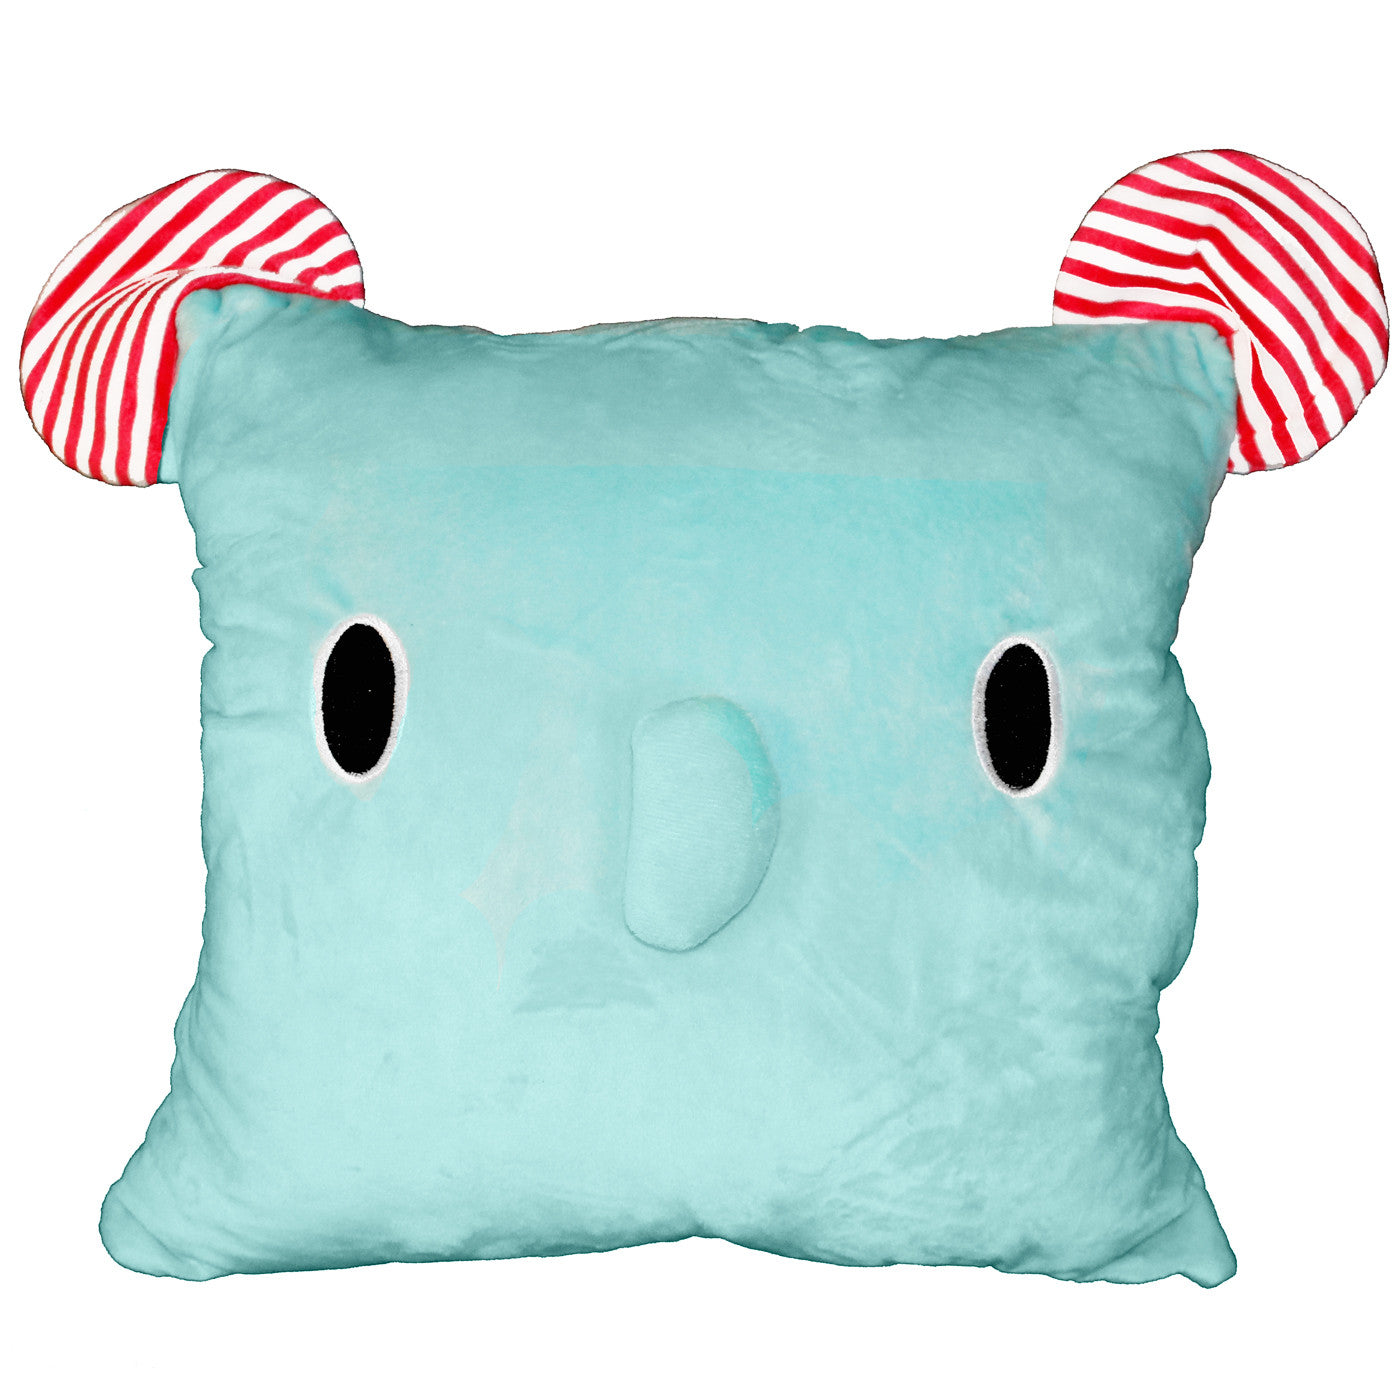 Blue Elephant Soft Plush 3-in-1 Travel Pillow Hand Warmer w ... for Pillow And Blanket Clipart  45hul